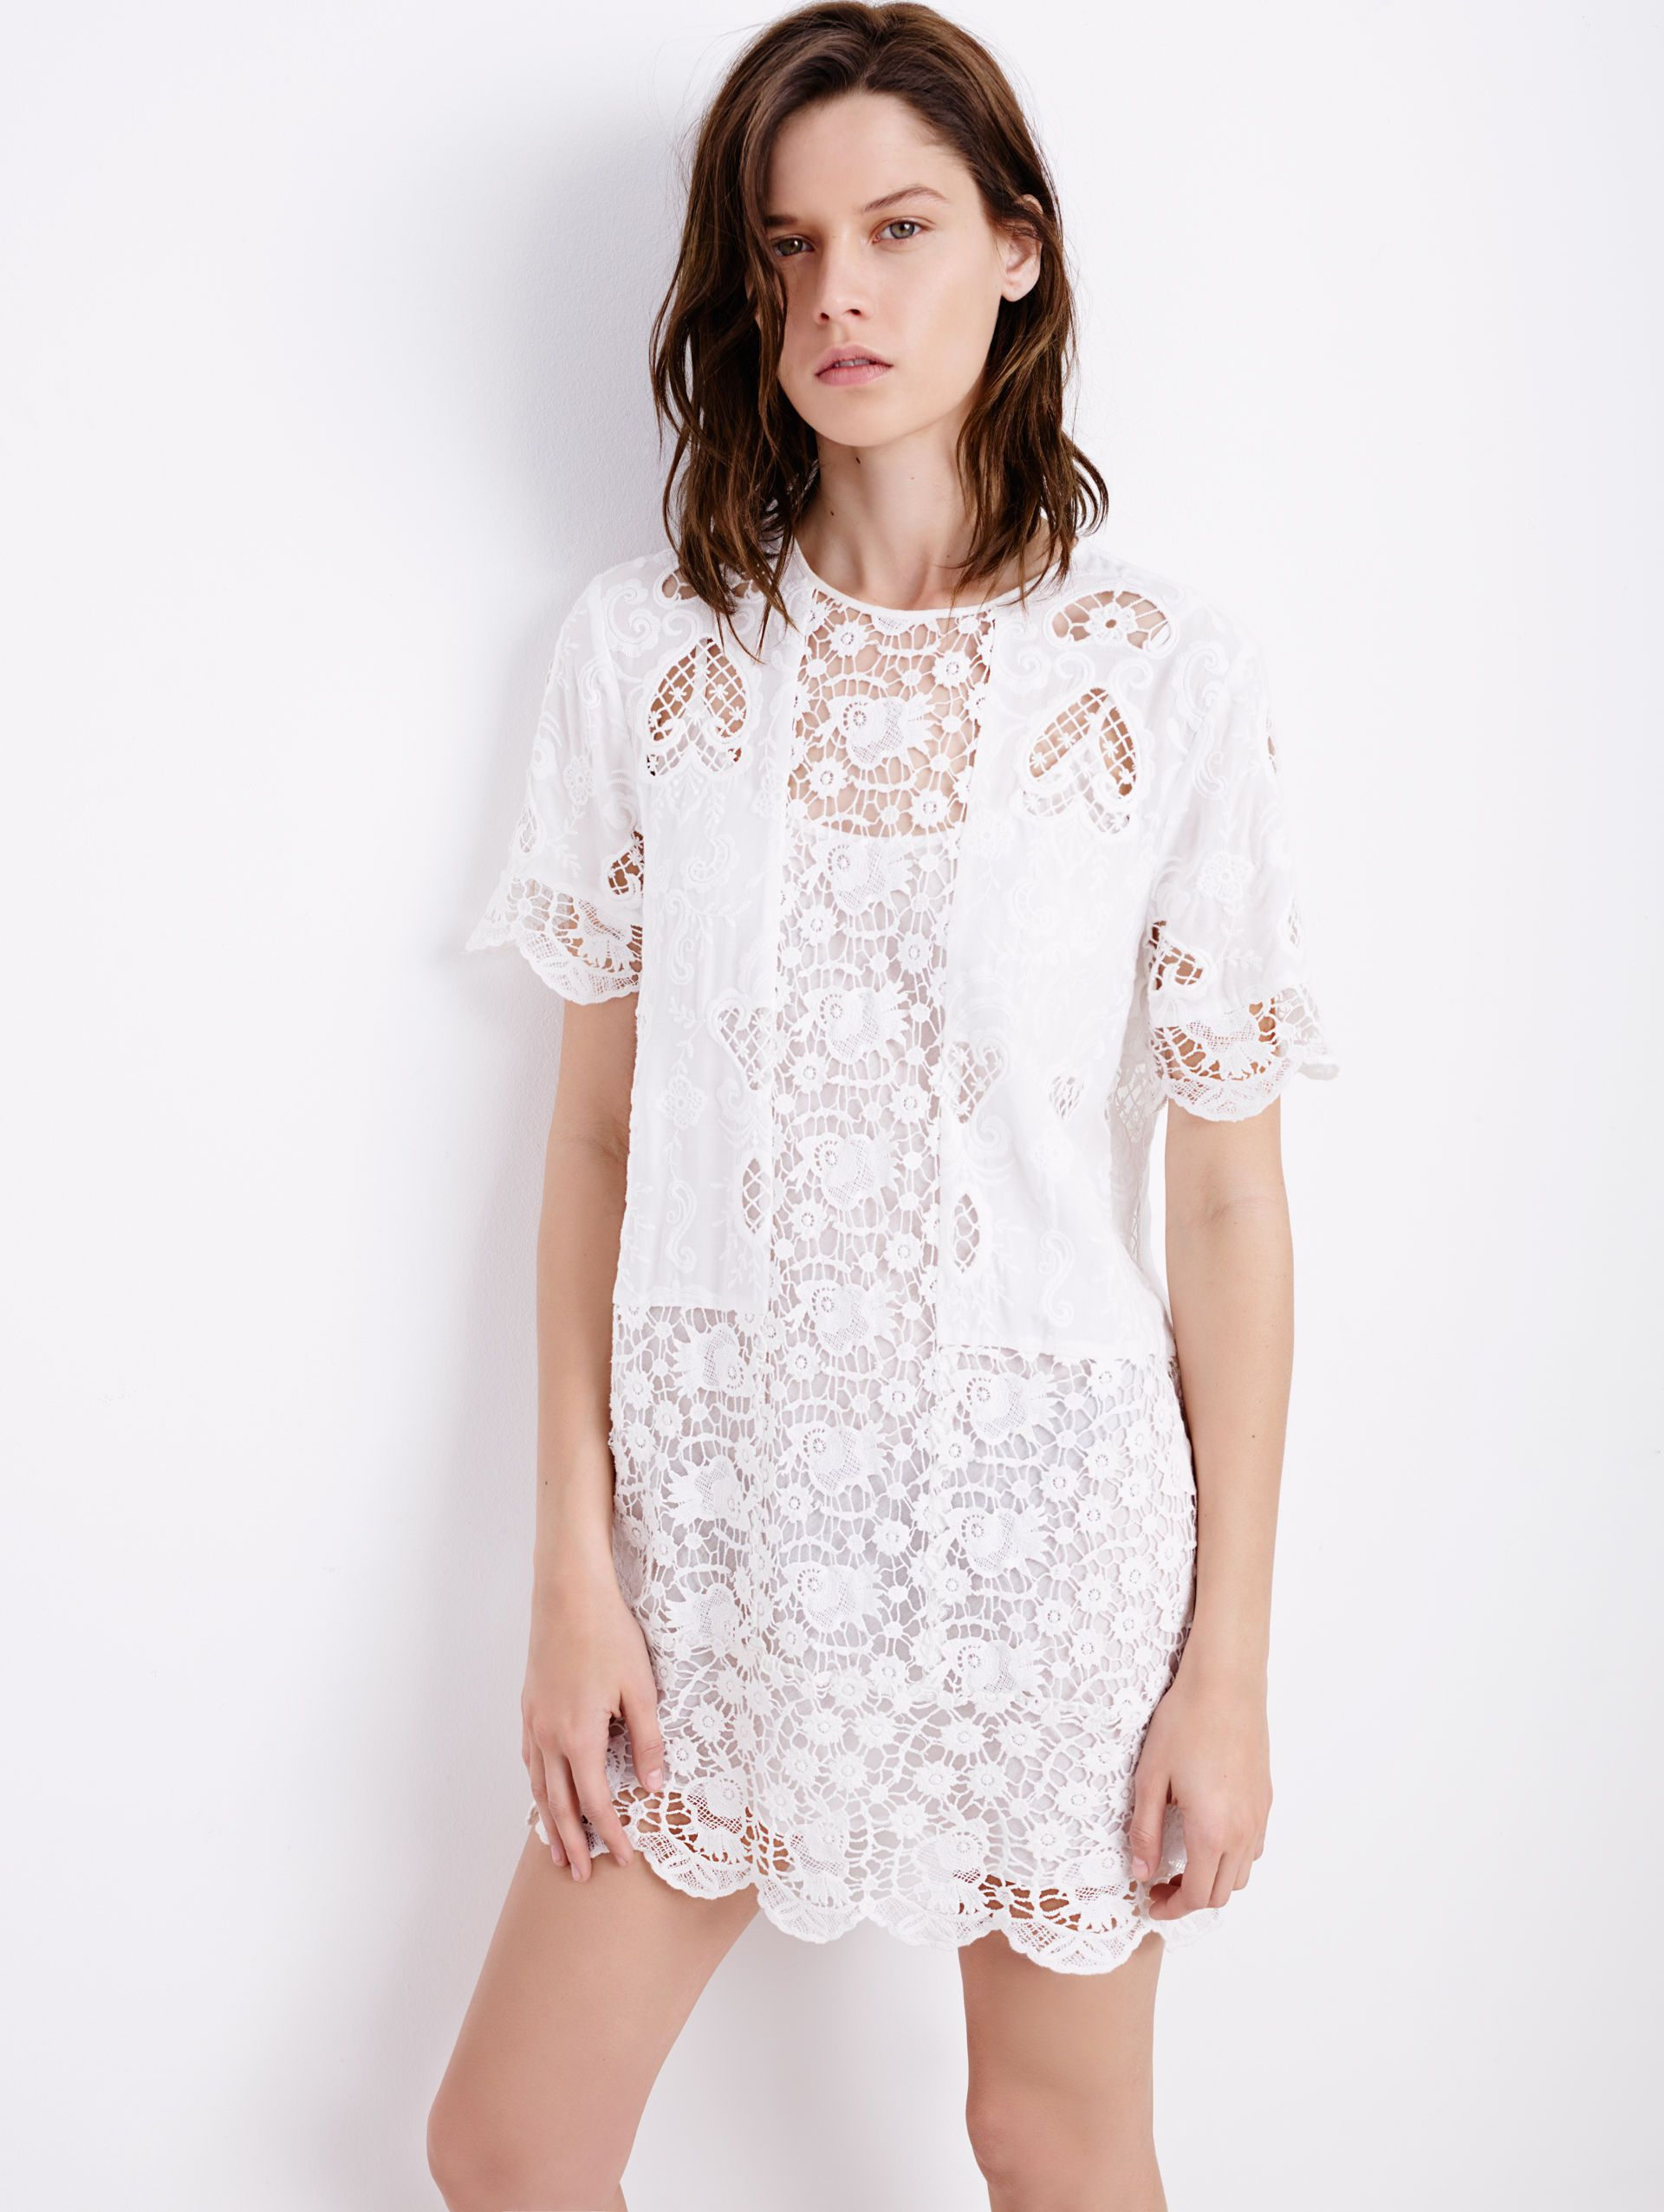 a8a27af59f Time to wear #Whit! Try this Lace Dress, $129 from Zara ...